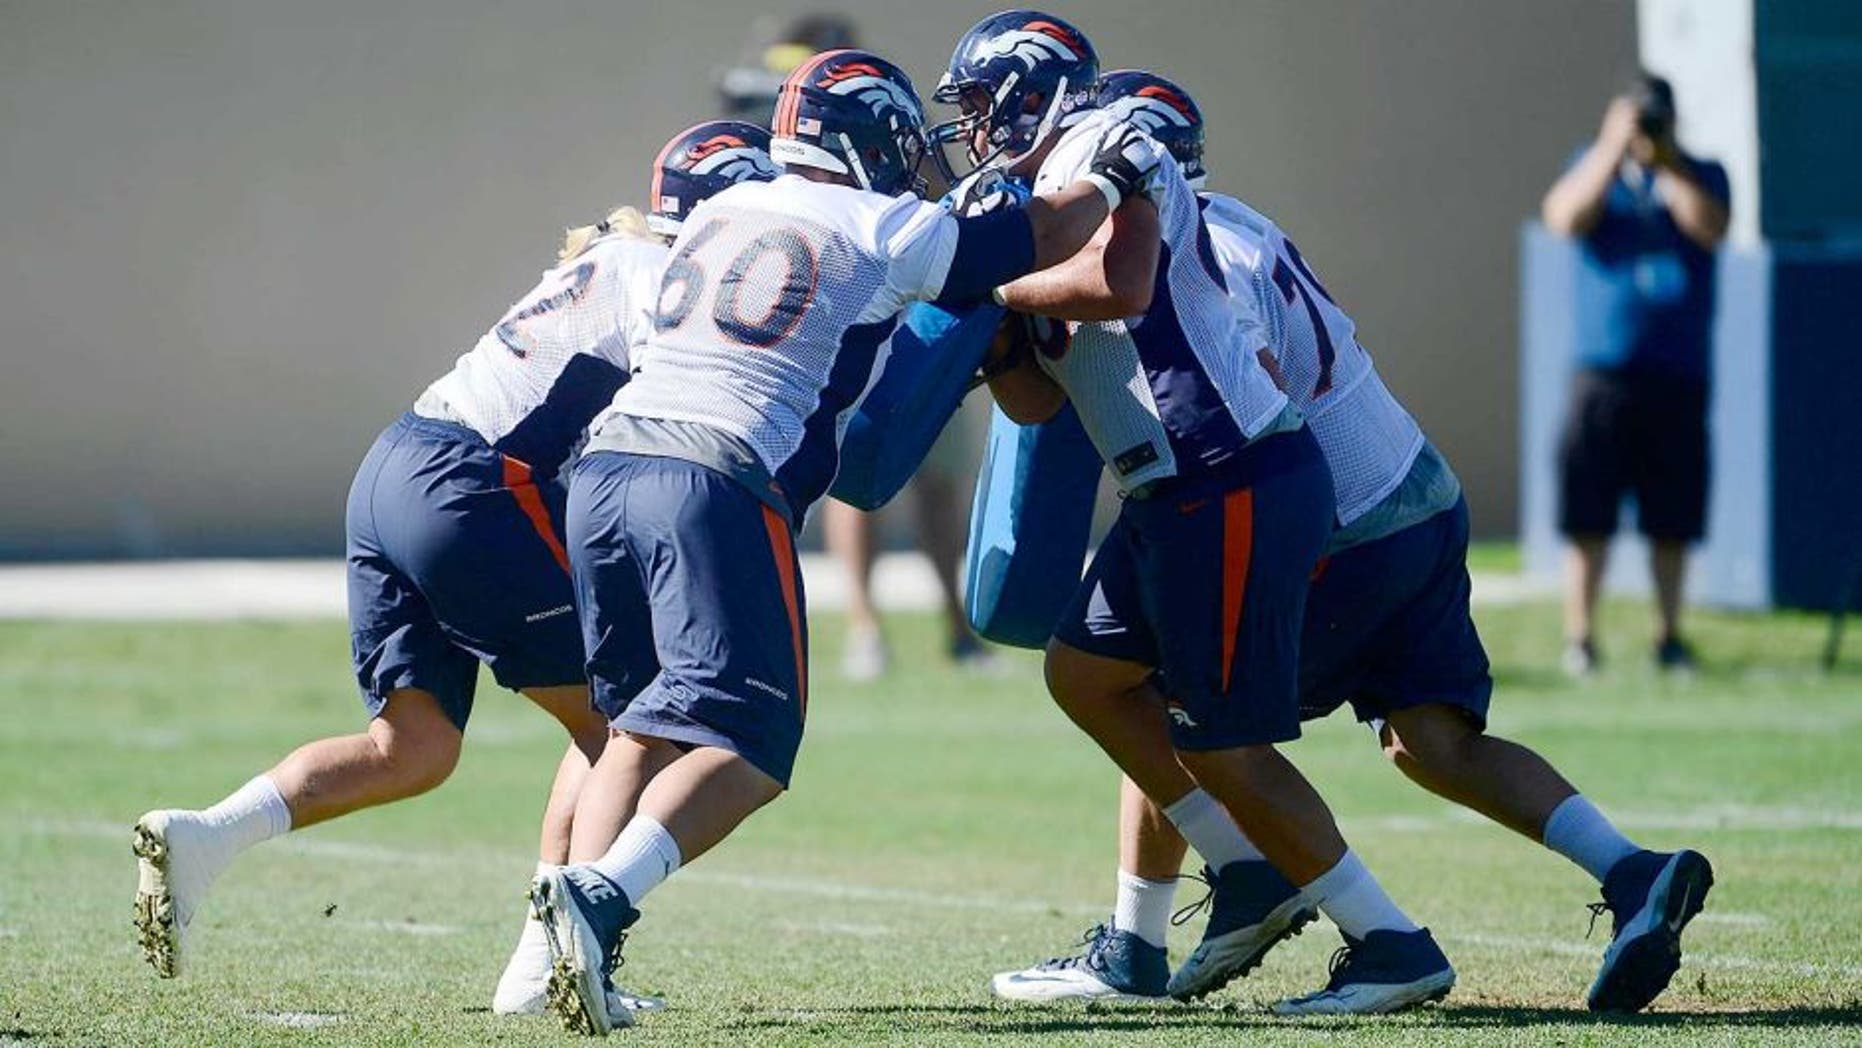 Aug 12, 2015; Englewood, CO, USA; Denver Broncos center Dillon Day (62), guard Andre Davis (60), tackle Louis Vasquez (65) and tackle Michael Schofield (79) pad train during training camp activities at the UCHealth Training Center. Mandatory Credit: Ron Chenoy-USA TODAY Sports